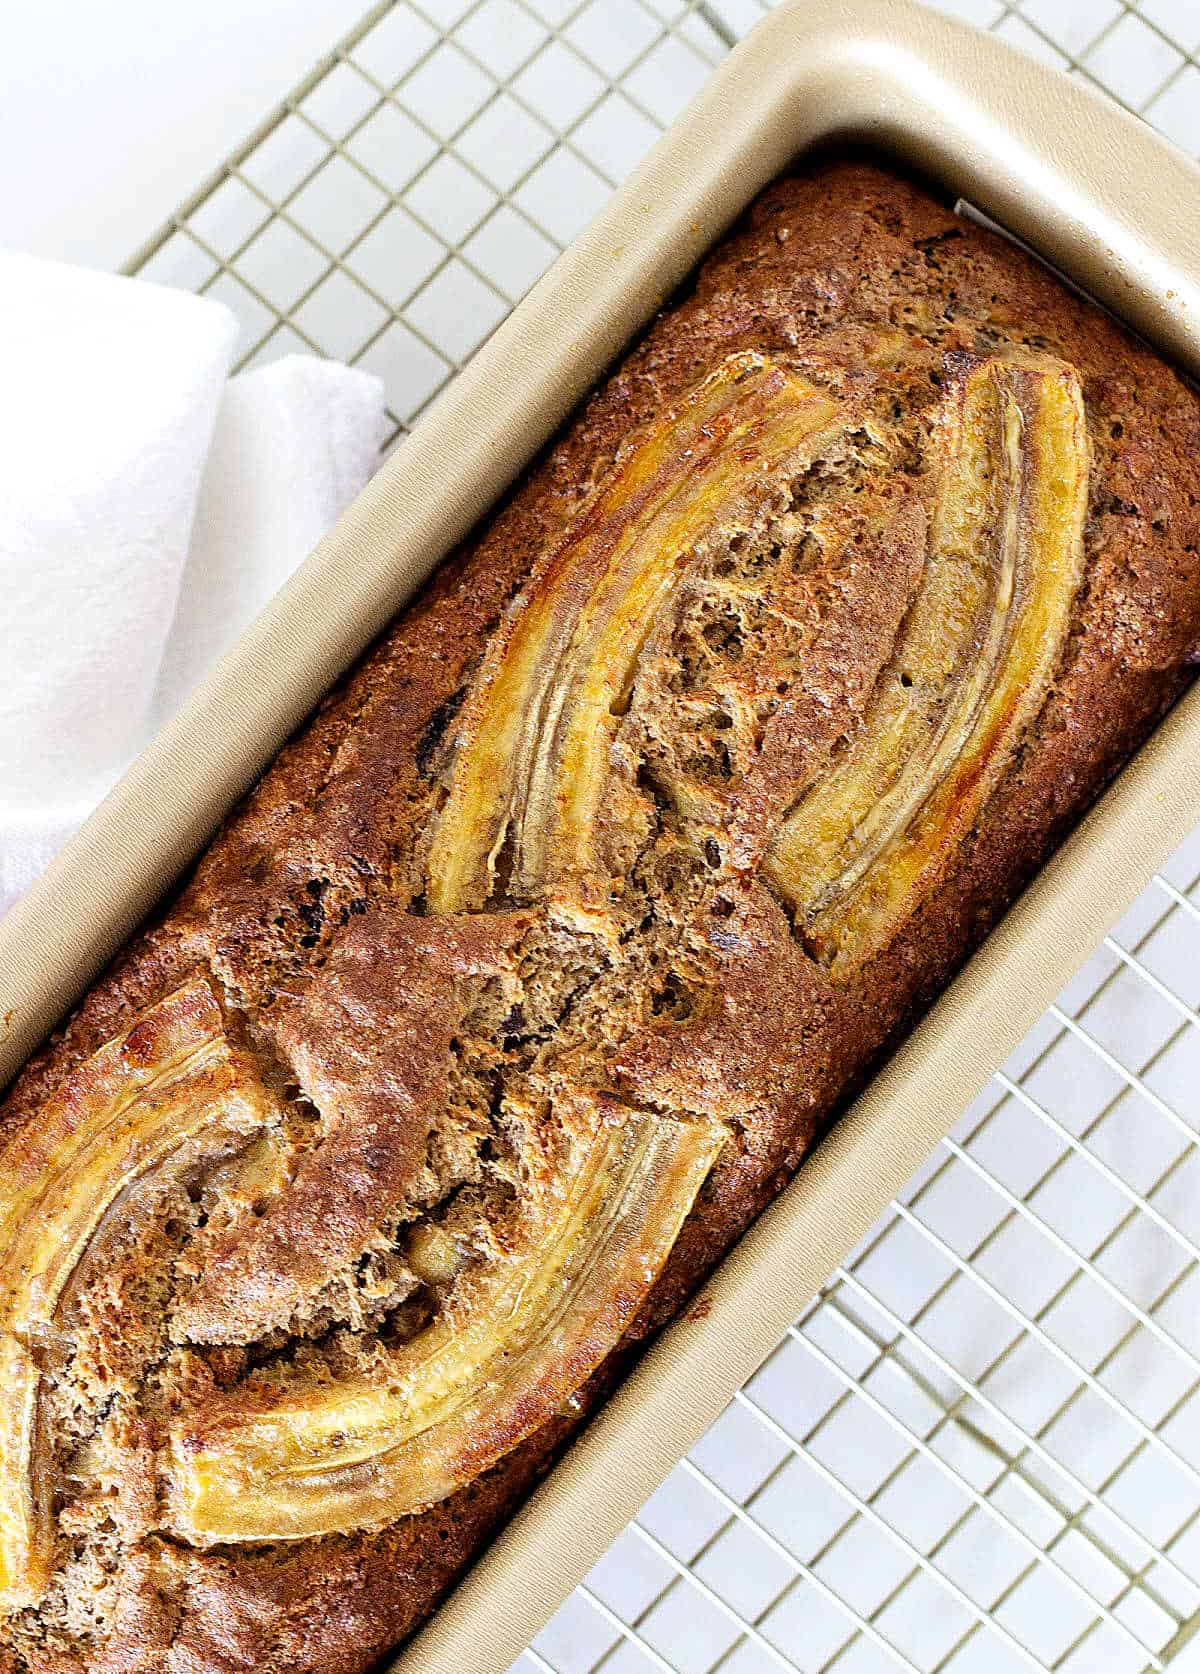 Overview of banana bread in metal pan on white kitchen towel